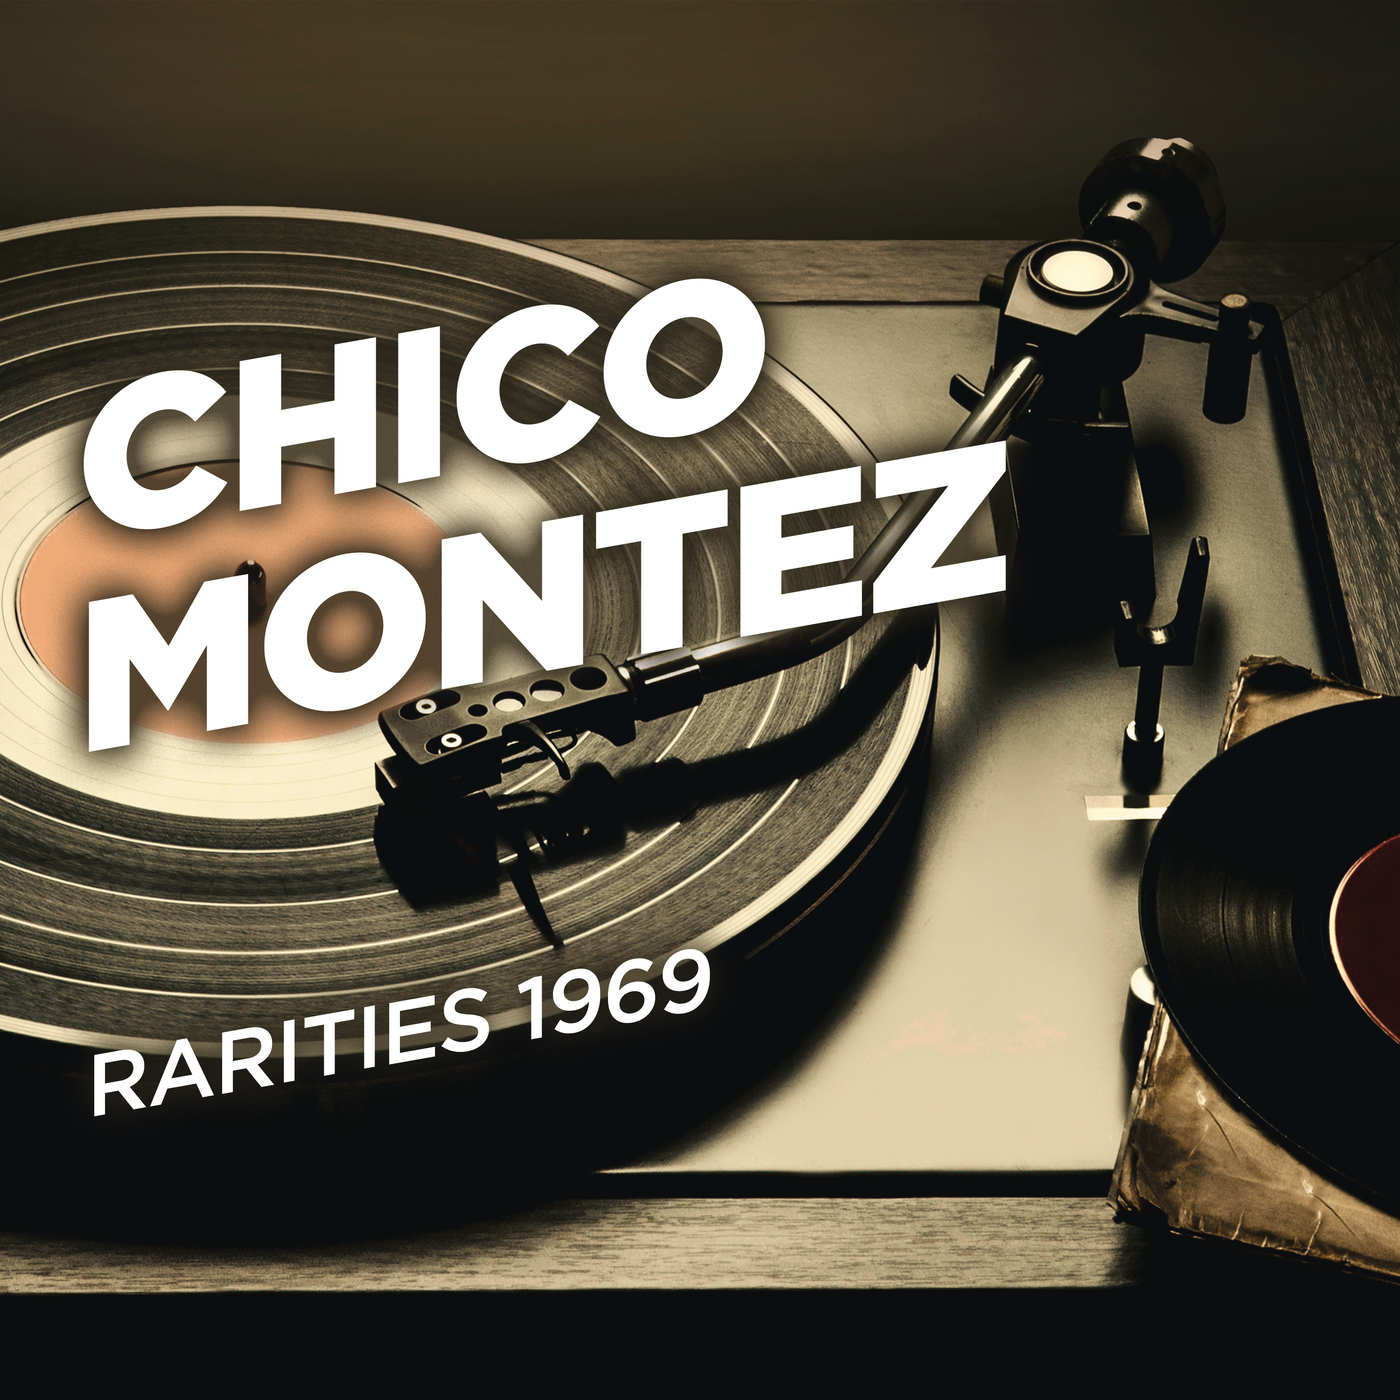 Rarities 1969 - Chico Montez